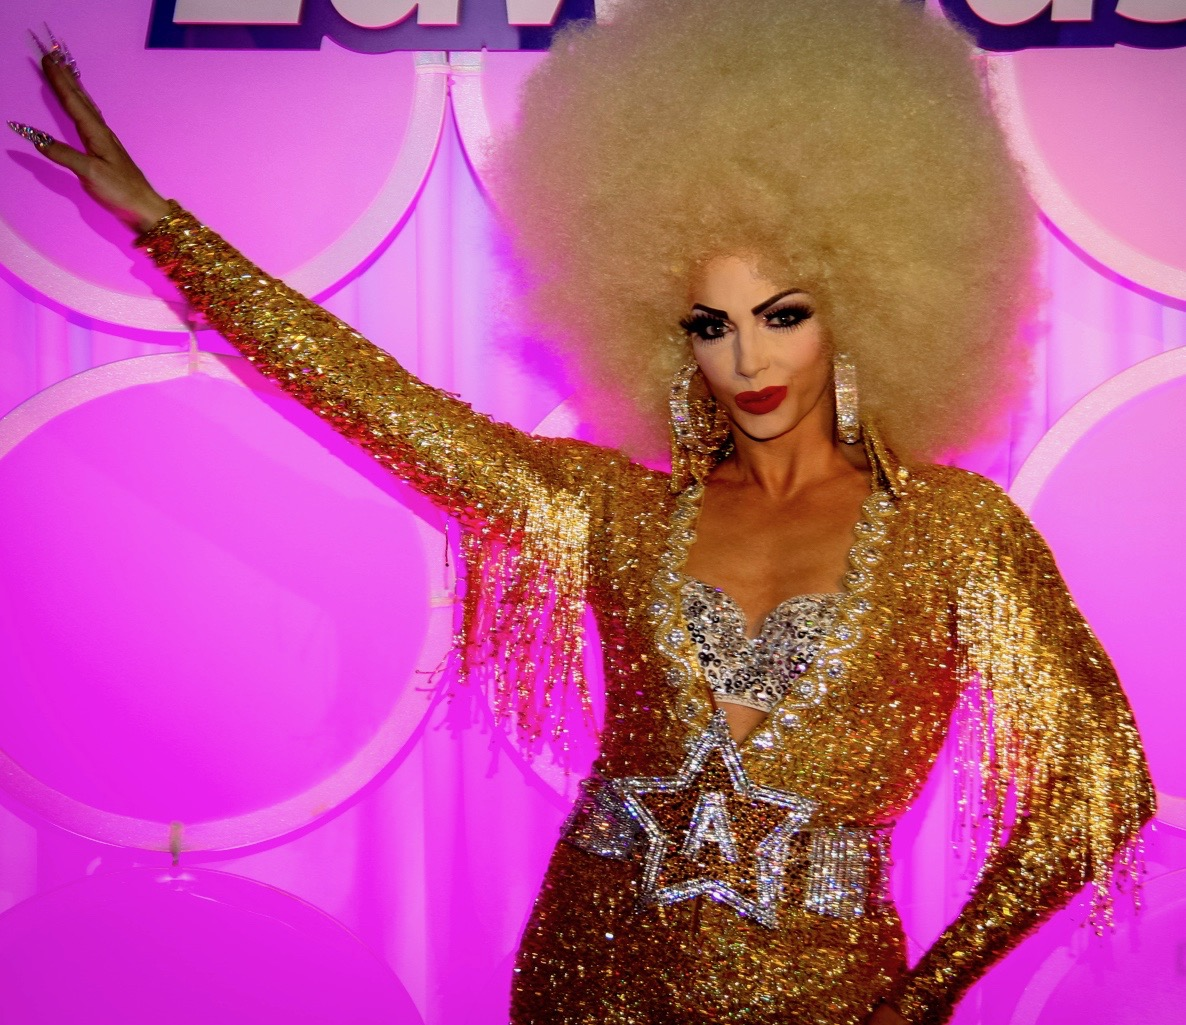 Alyssa_Edwards_at_RuPaul's_Dragcon_2017_by_dvsross 2